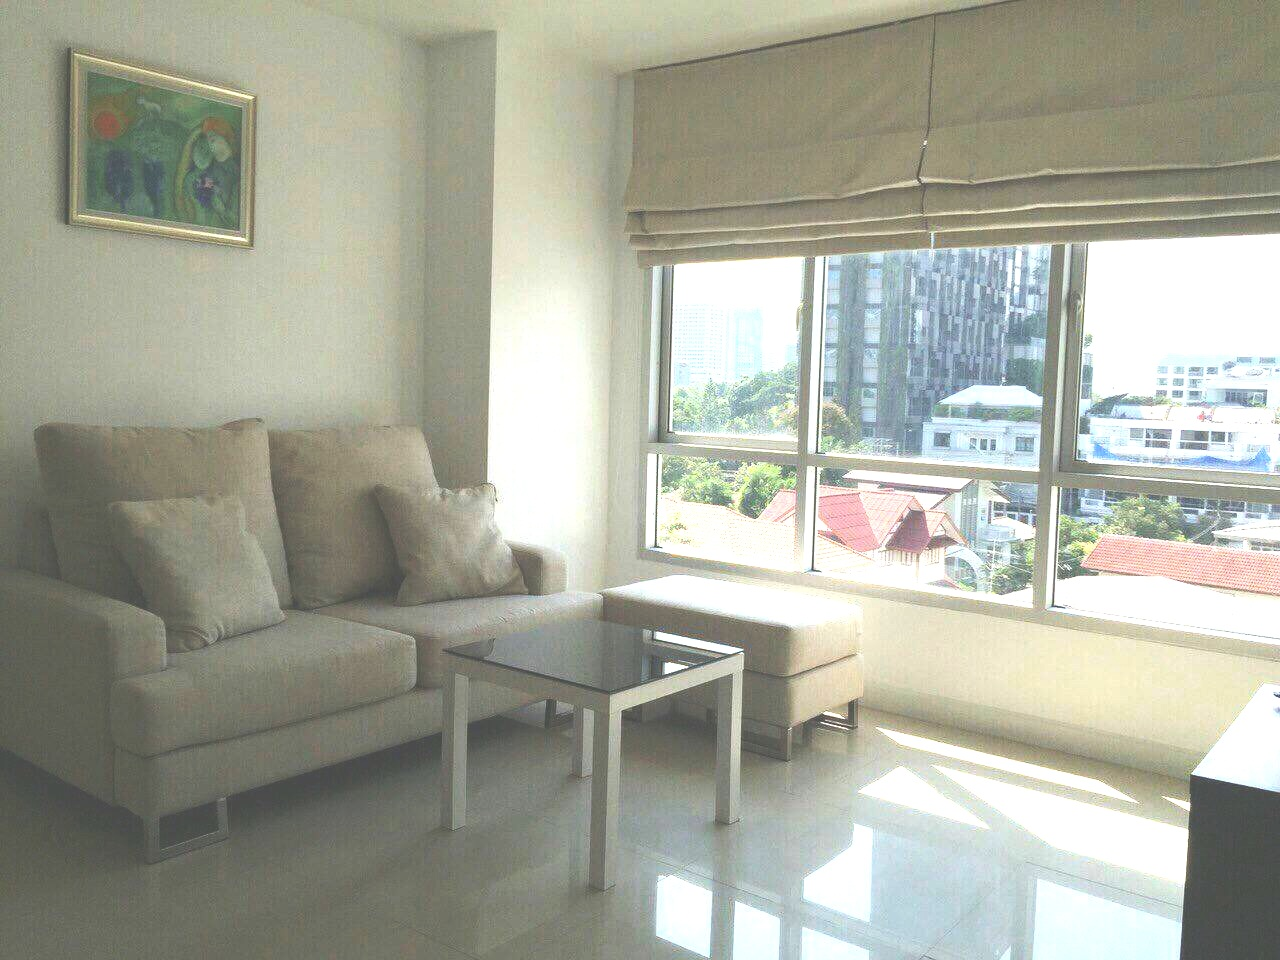 RE/MAX All Star Realty Agency's Beautiful One-Bed Condo for sale/rent at Thong Lor BTS 22,000 baht only (Sukhumvit Soi 40) 4